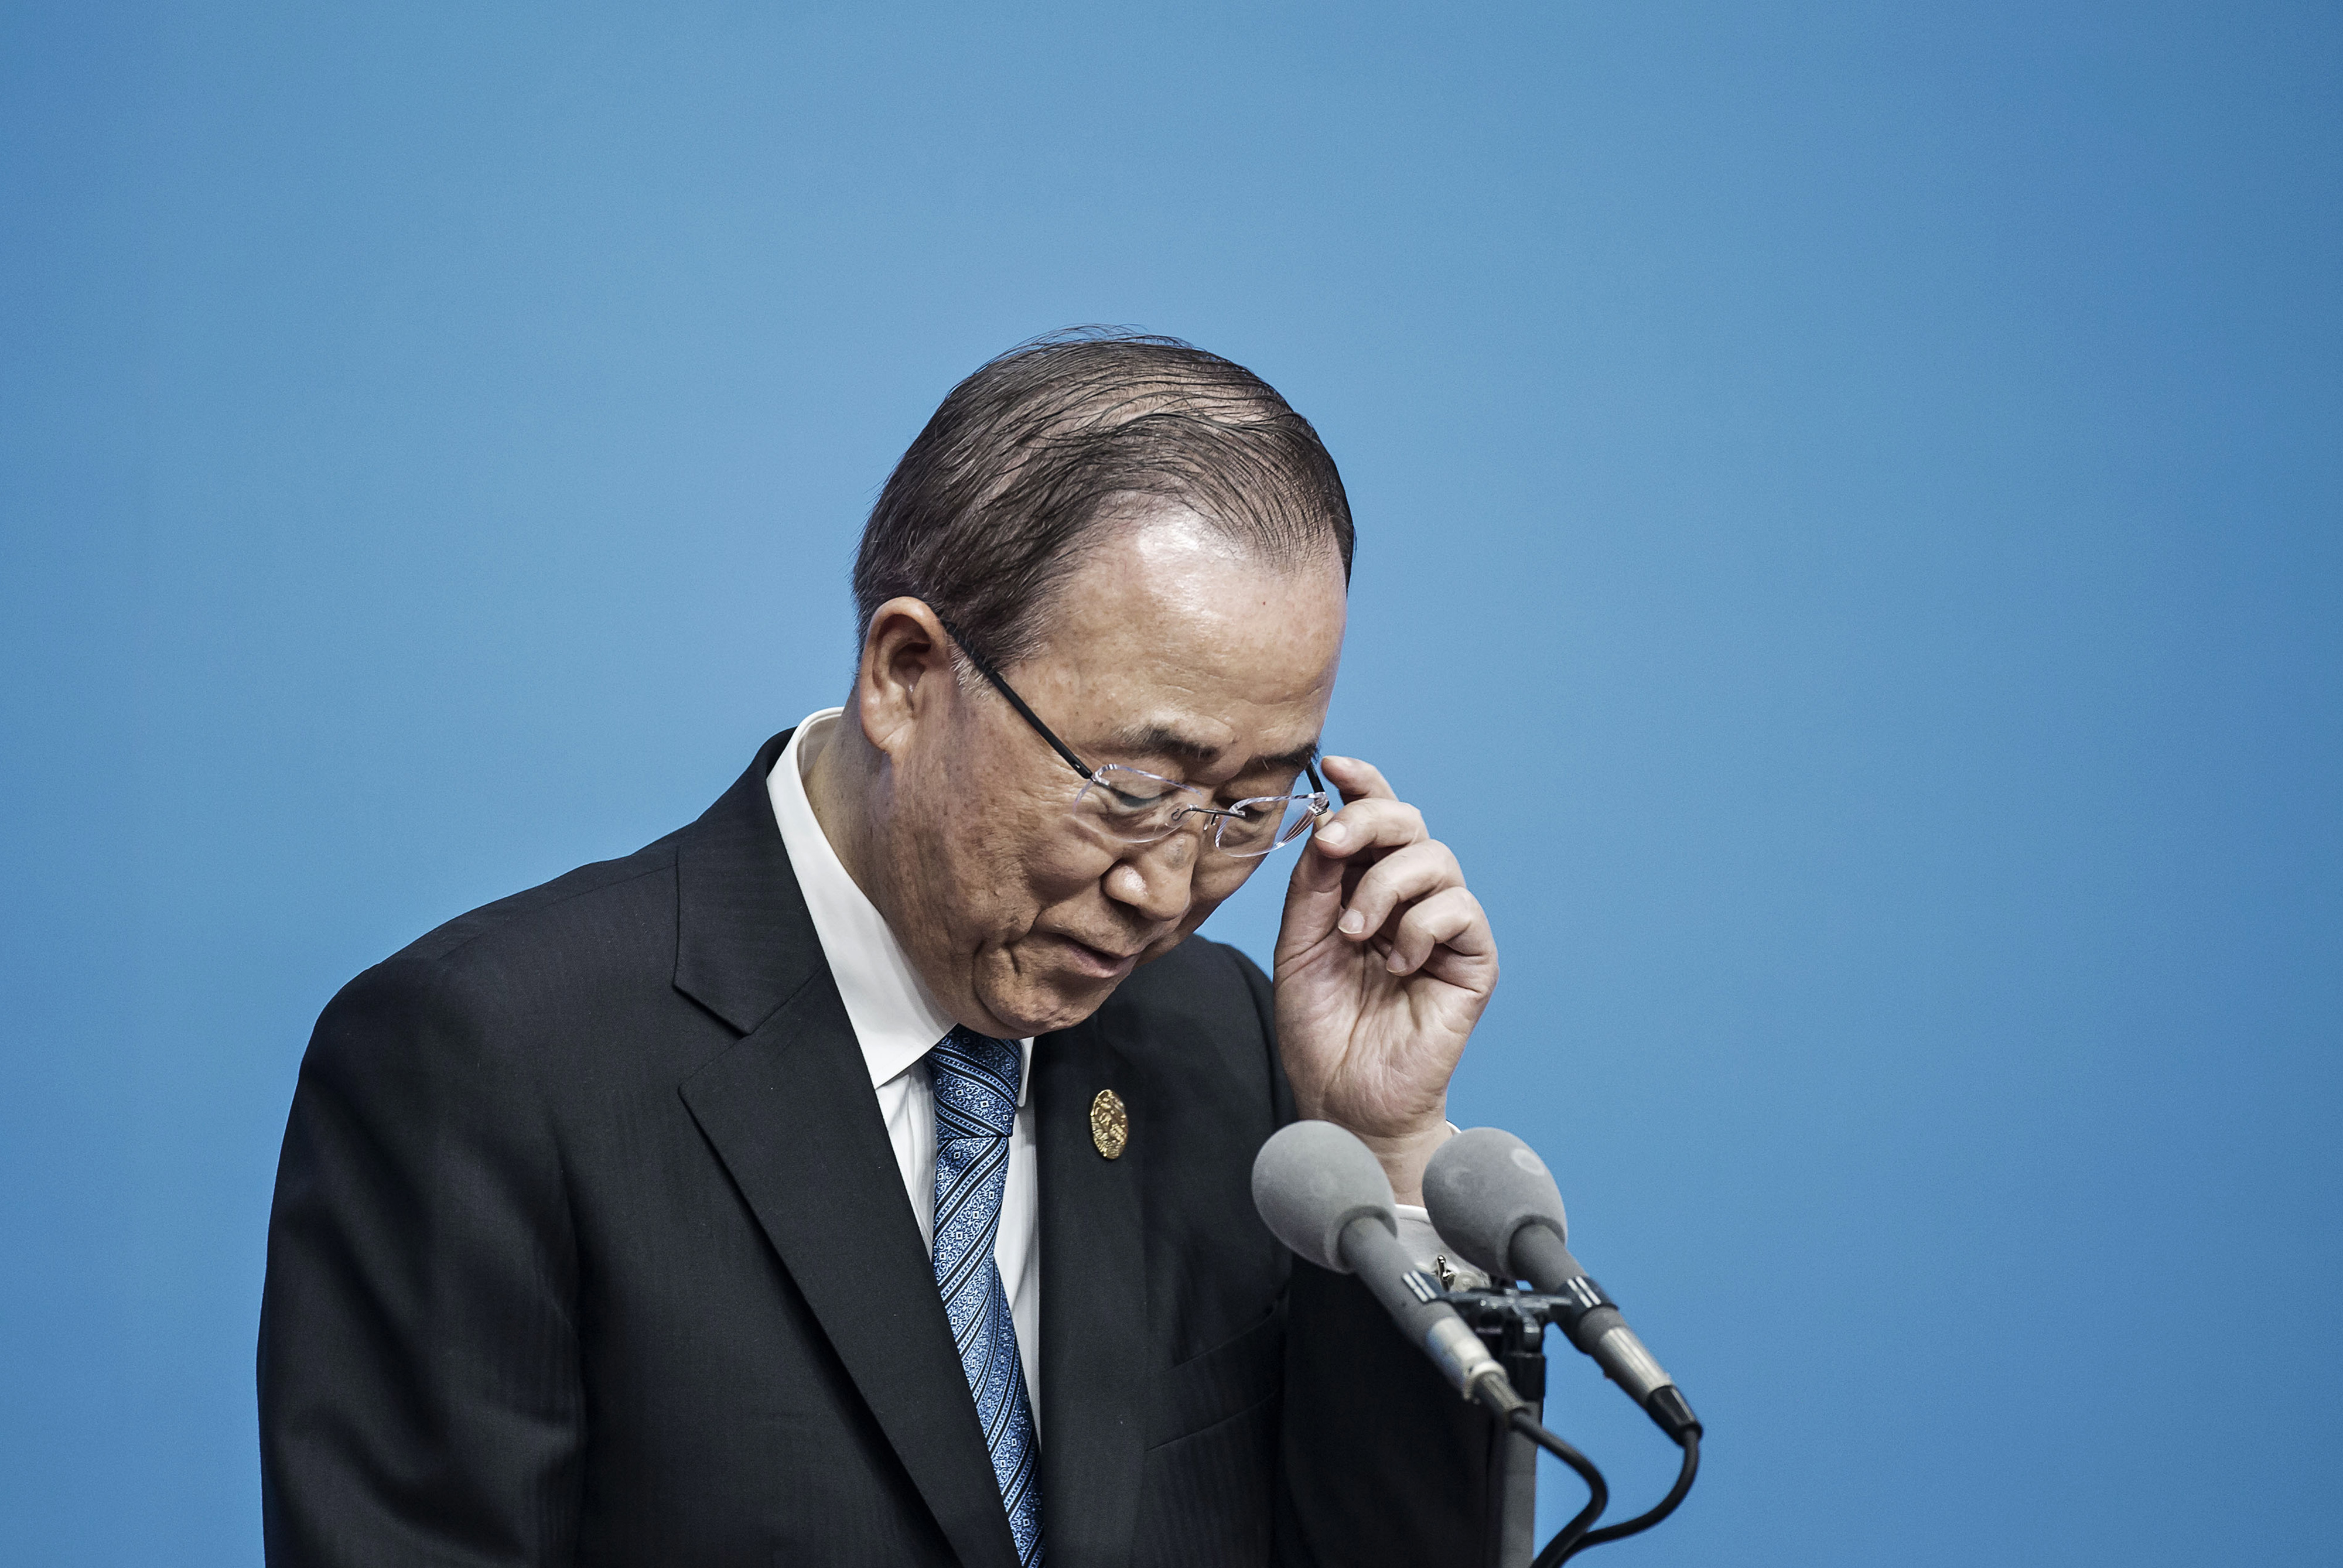 Ban Ki-Moon, then secretary general of the United Nations, adjusts his glasses during a news conference on the sidelines of the Group of 20 (G-20) summit in Hangzhou, China, on Sunday, Sept. 4, 2016.